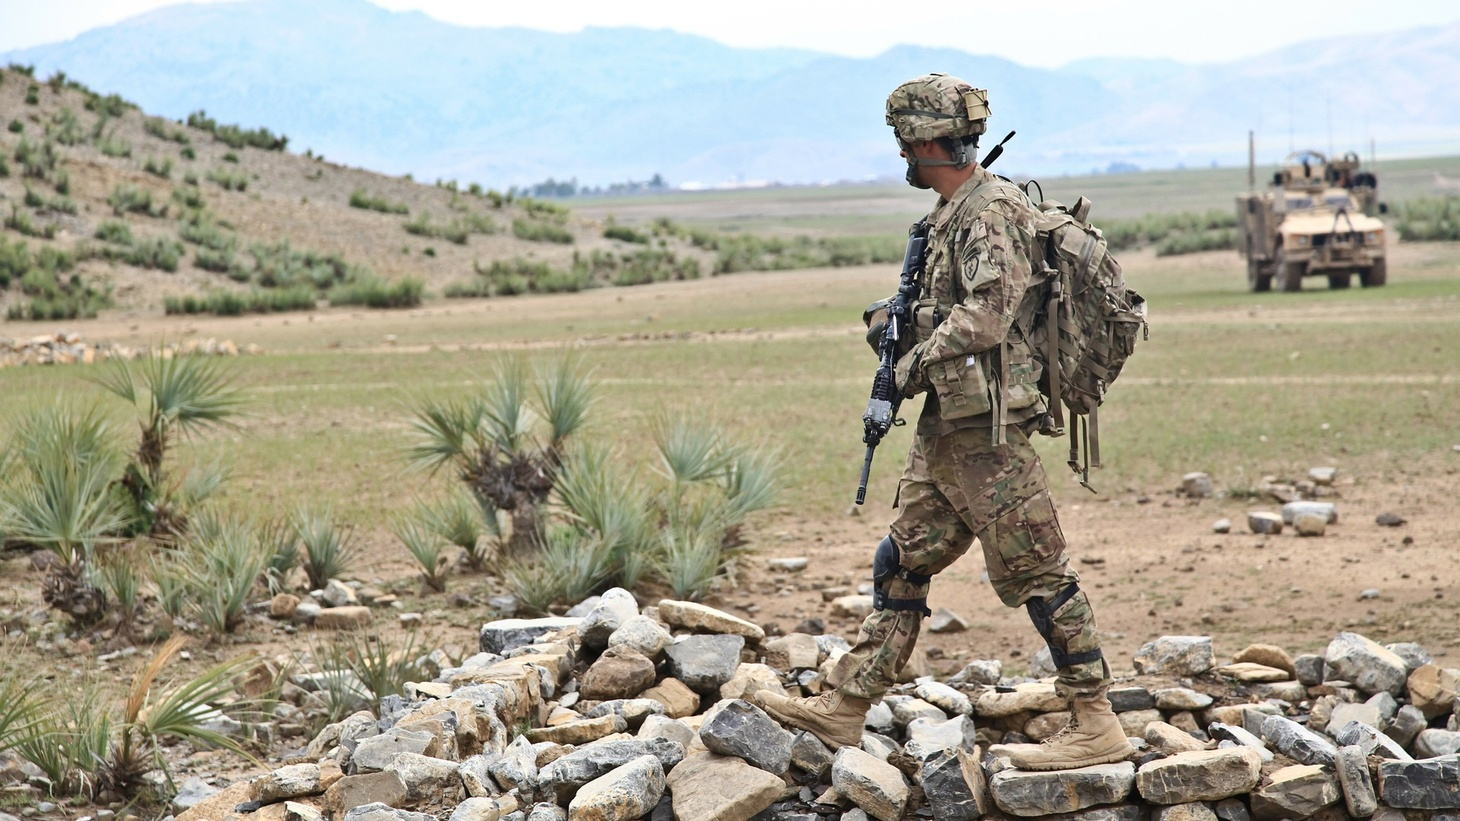 A soldier in Afghanistan.